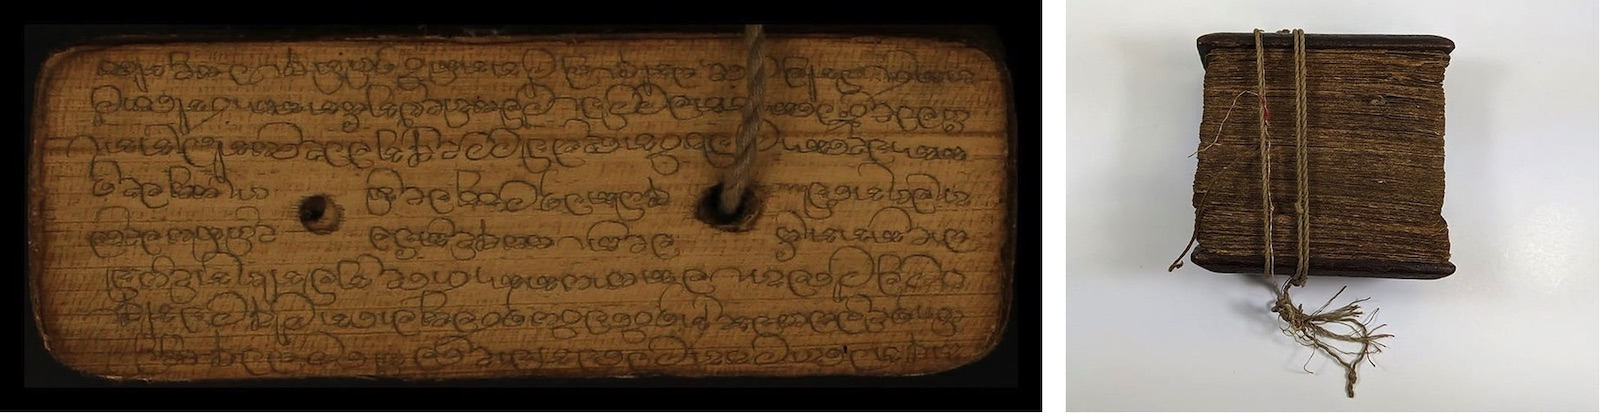 A palm leaf page with Sinhala writing.